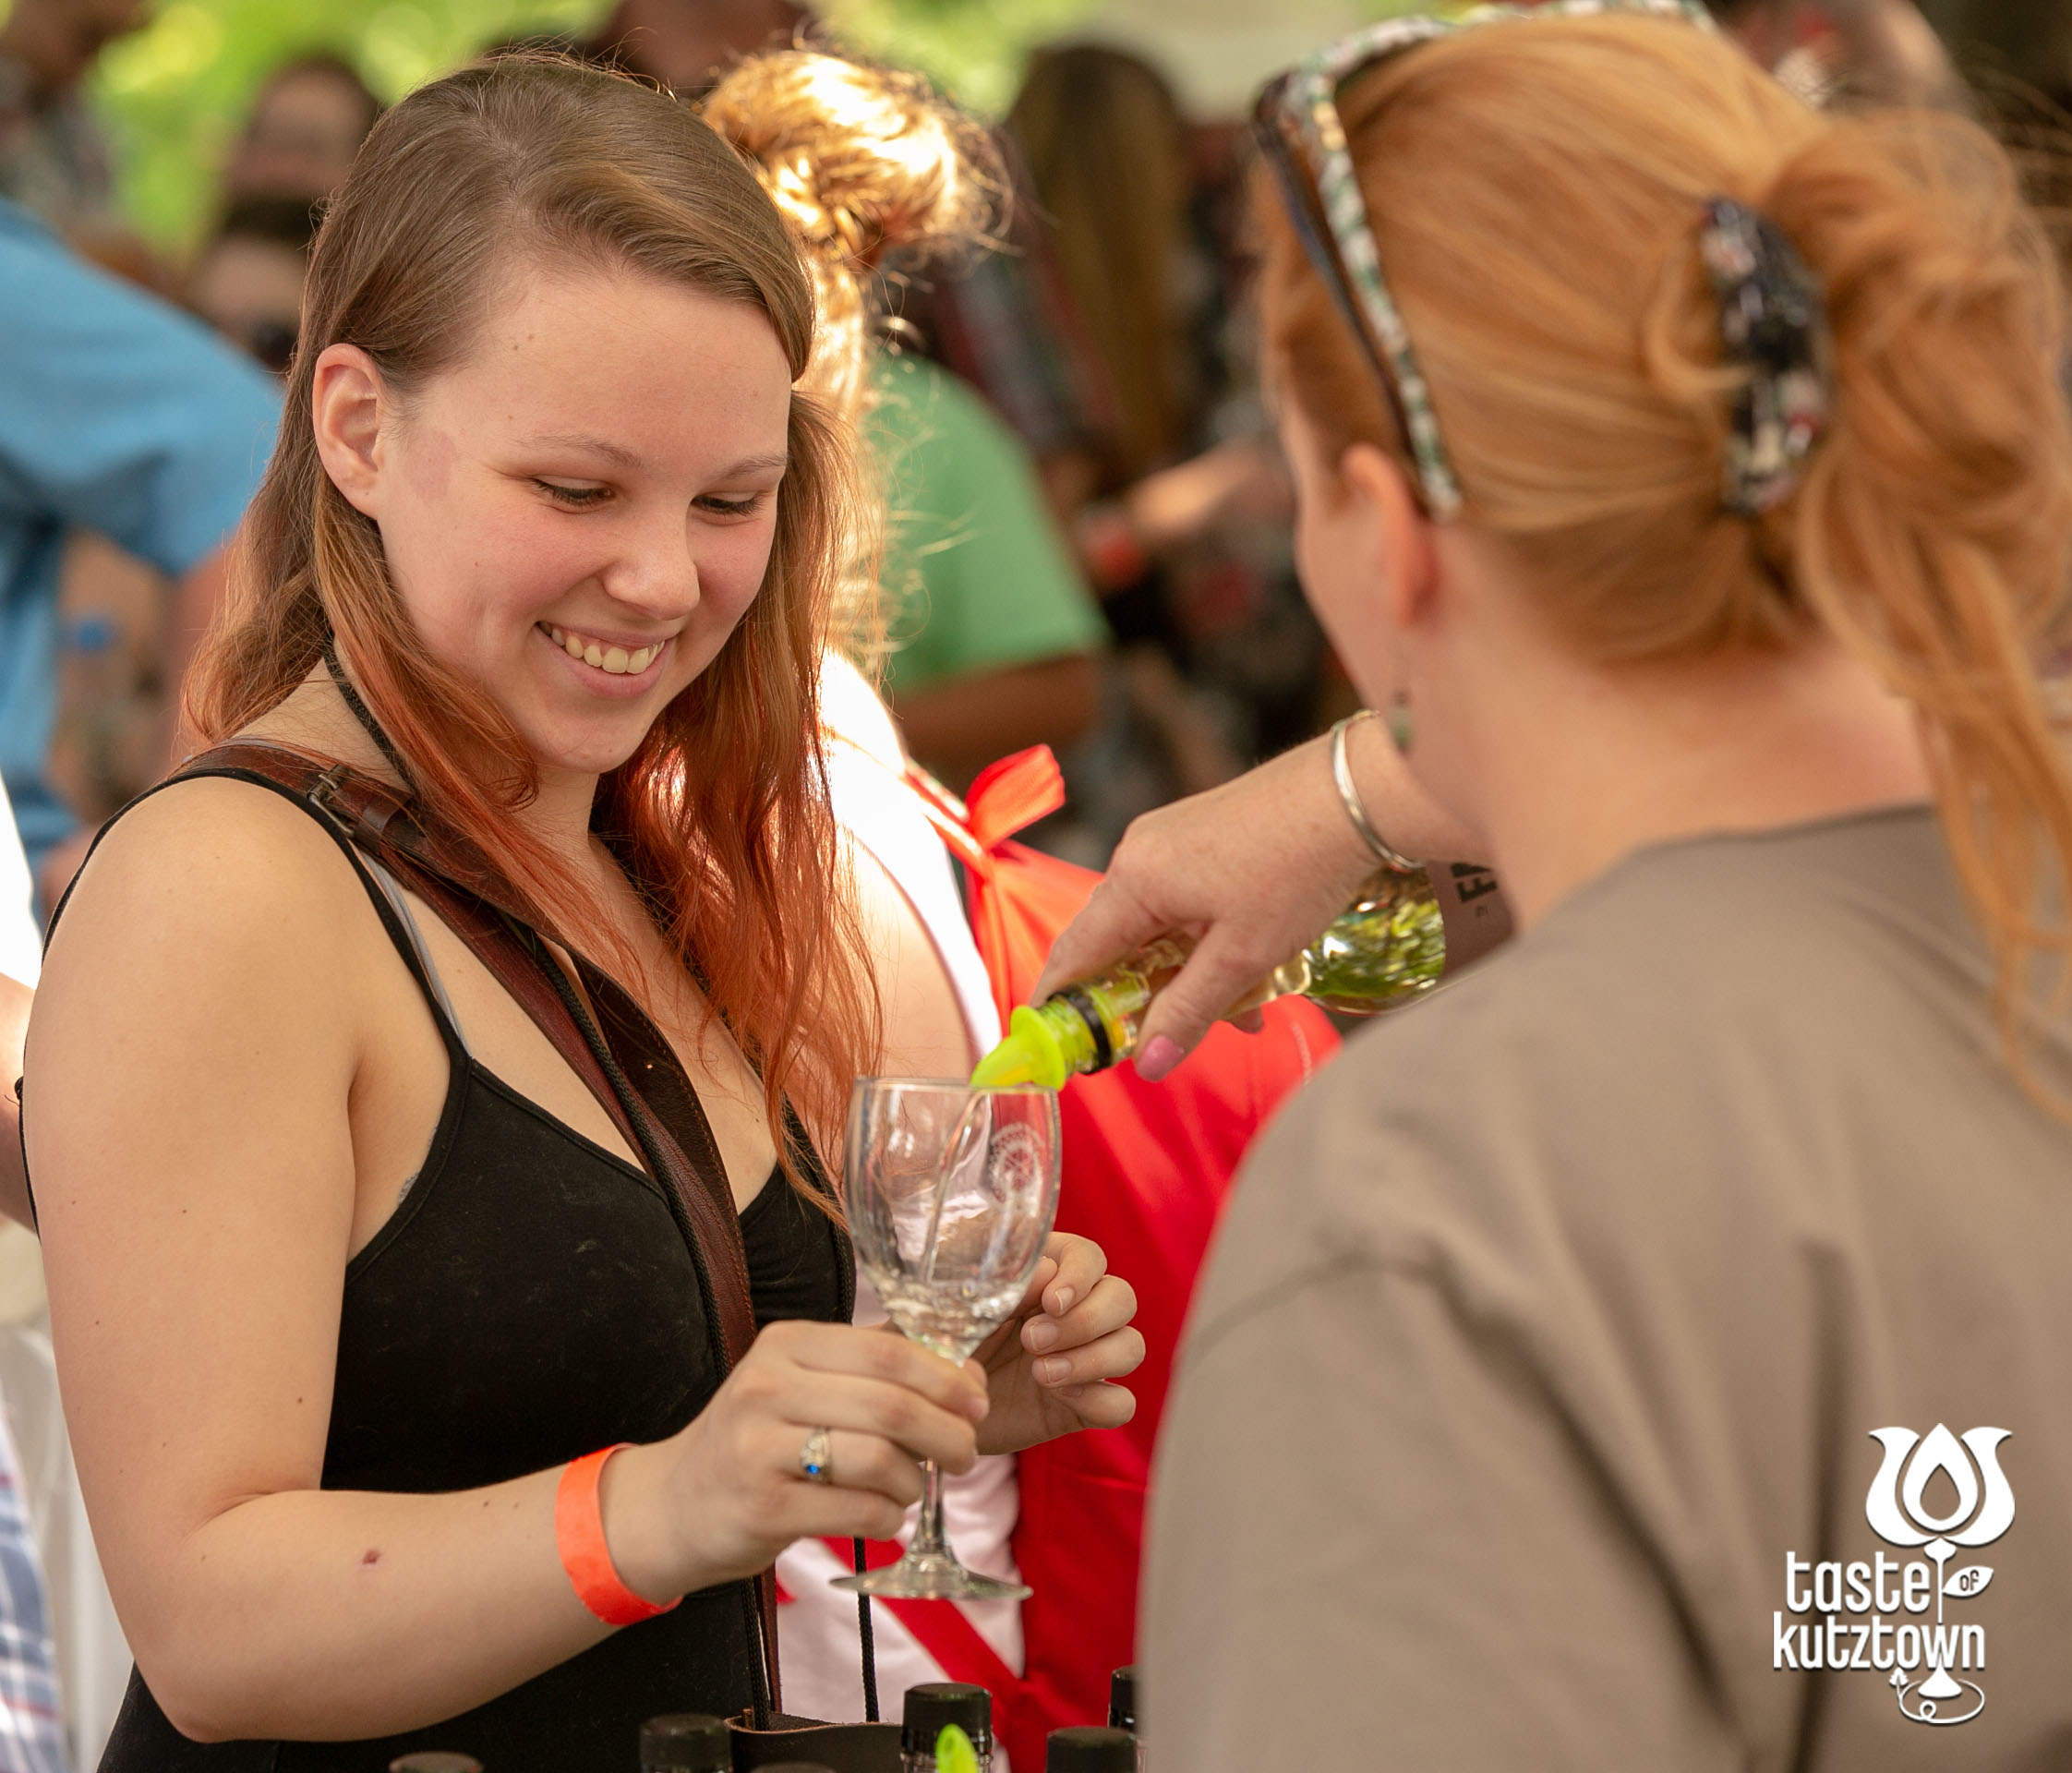 Taste of Kutztown Wine & Beer Festival, group having fun outdoor wine festival